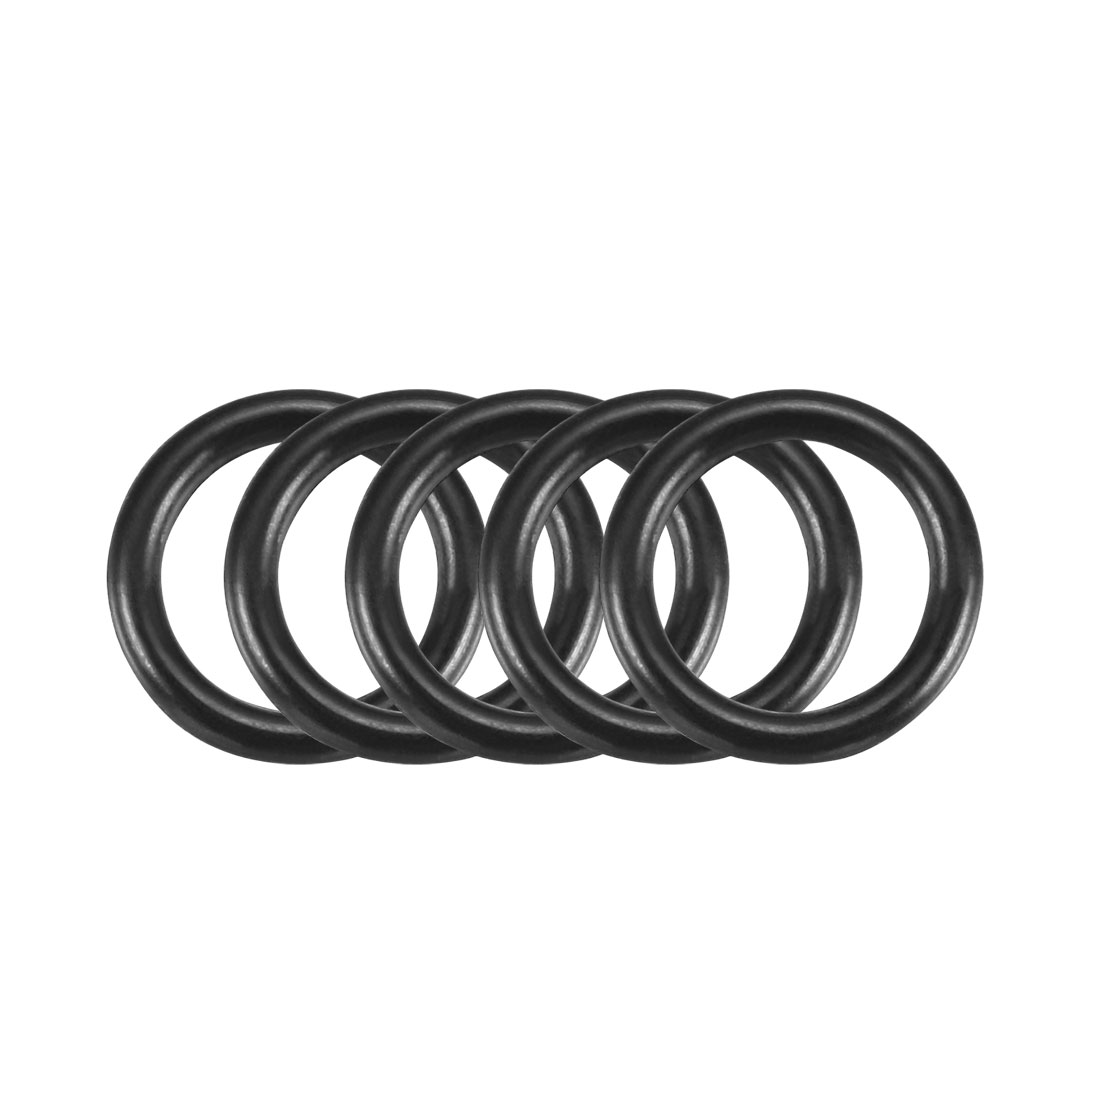 100Pcs 10.5x1.5mm Nitrile Rubber O-rings Heat Resistant Sealing Ring Grommets